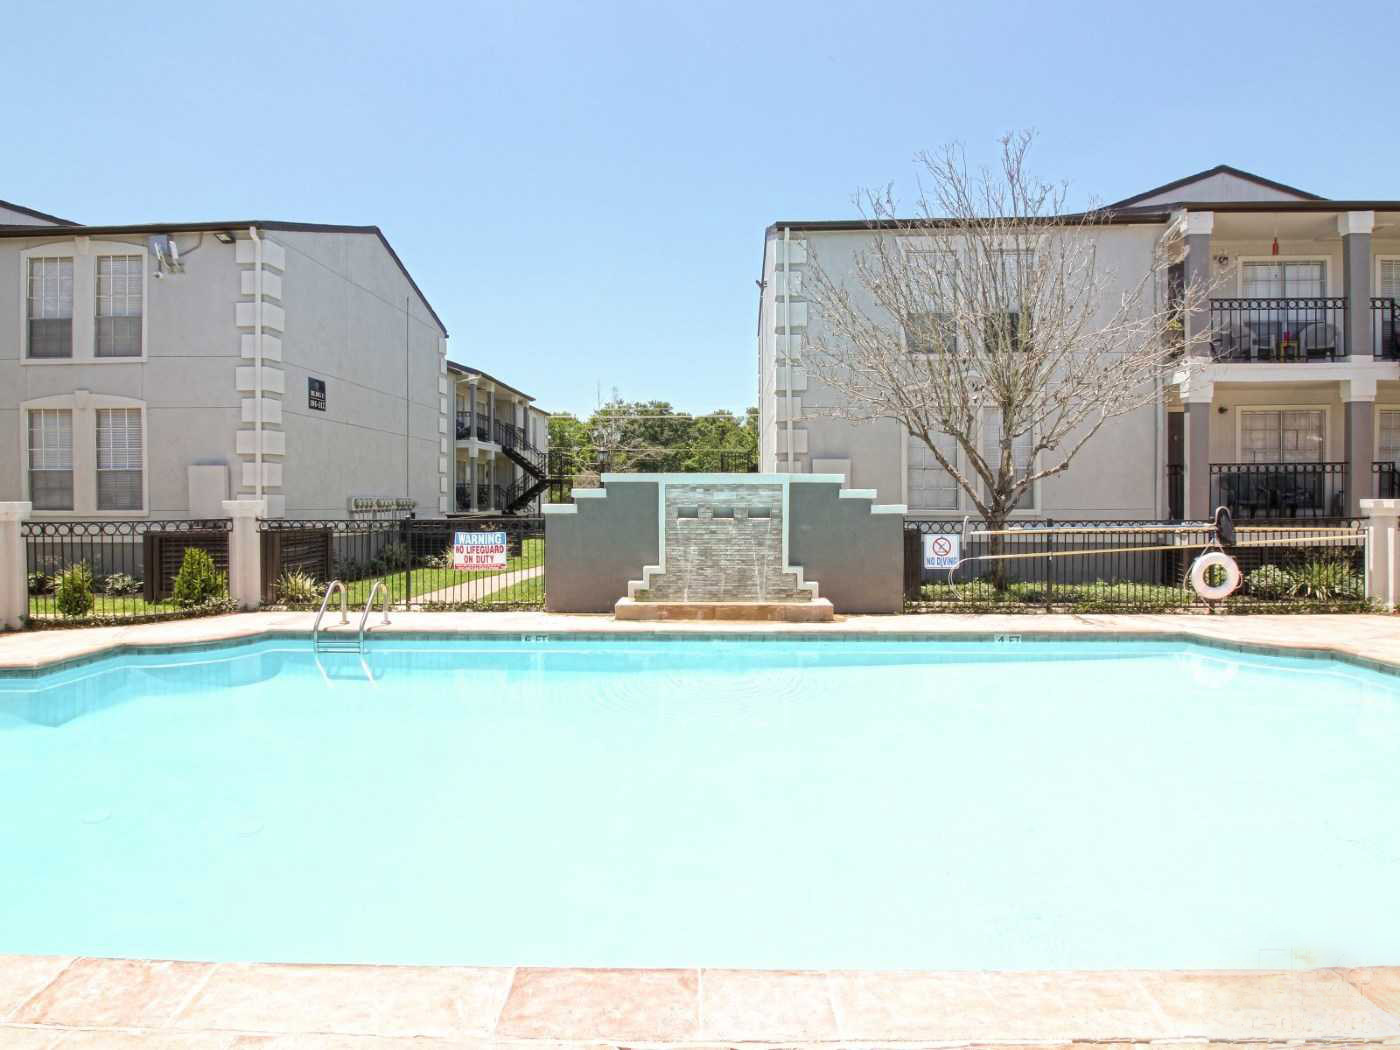 Pool with Waterfall at Grove at Seabrook Apartments in Seabrook, Texas